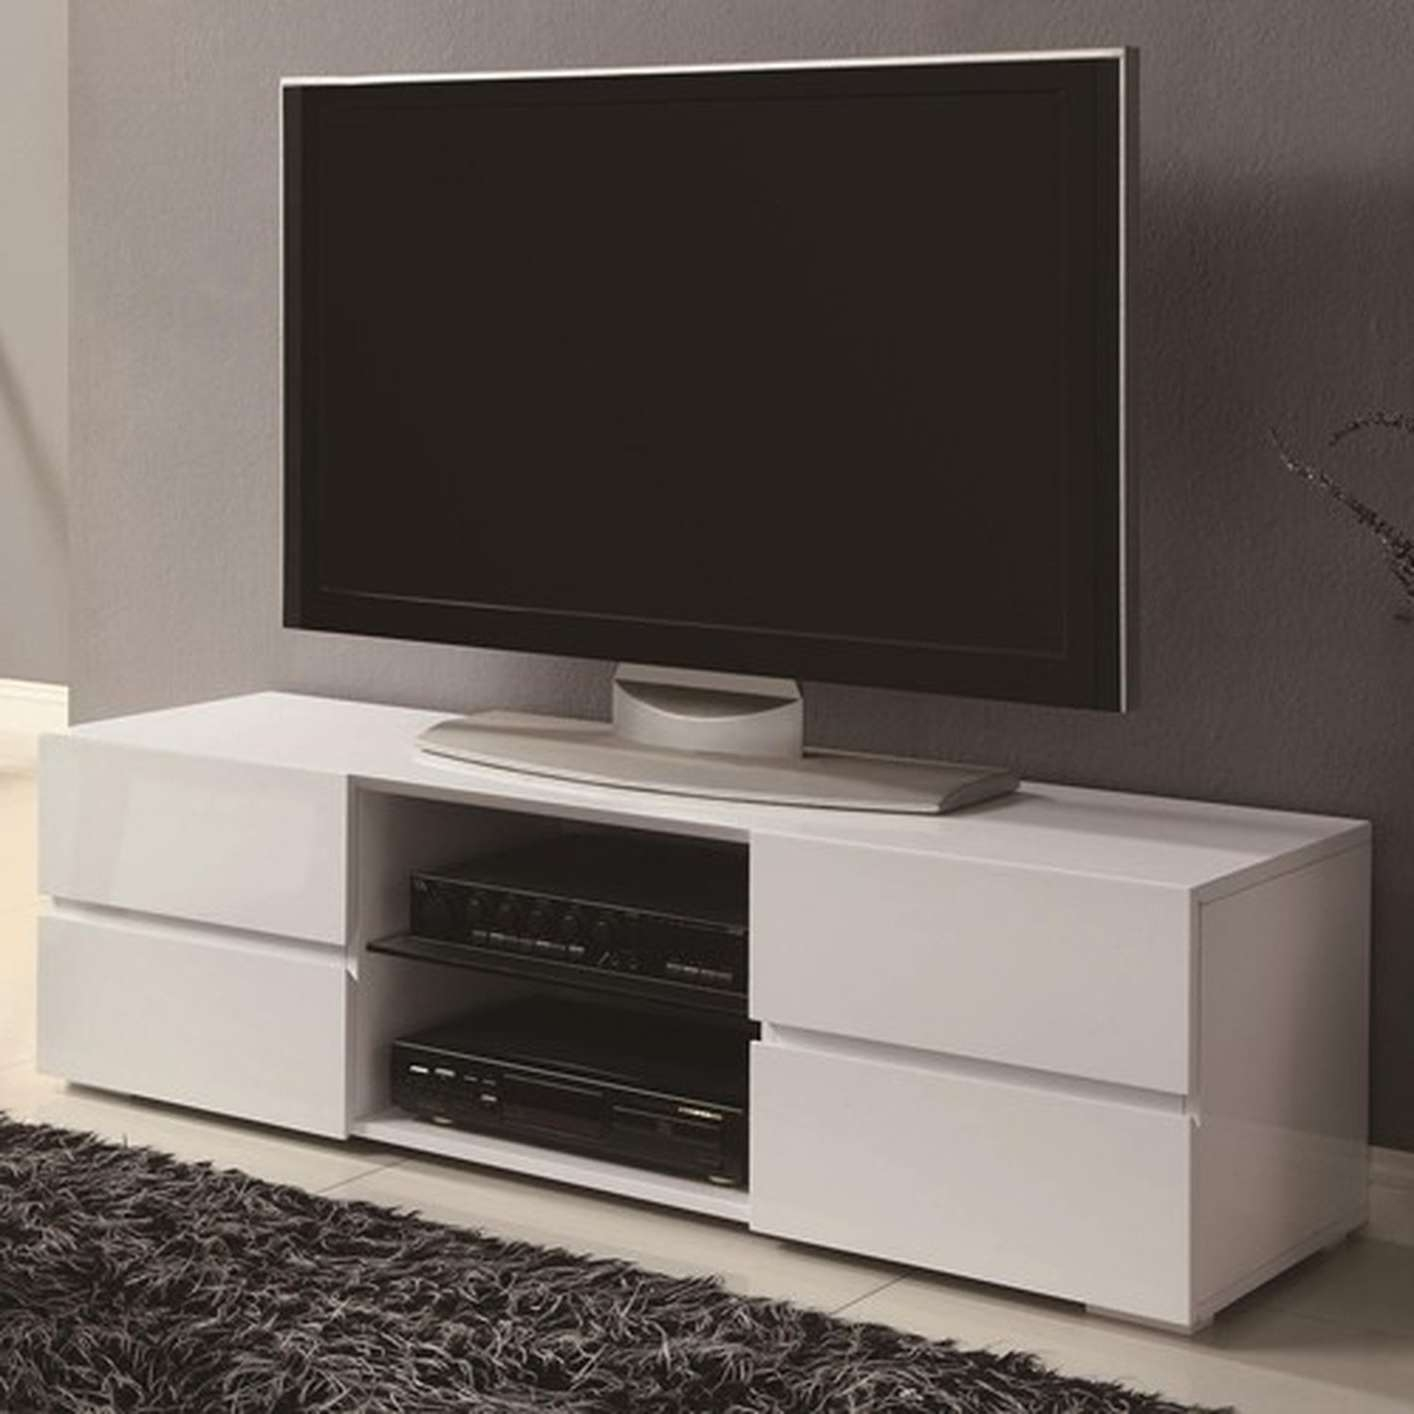 White Wood Tv Stand – Steal A Sofa Furniture Outlet Los Angeles Ca Throughout White Wood Tv Cabinets (View 17 of 20)